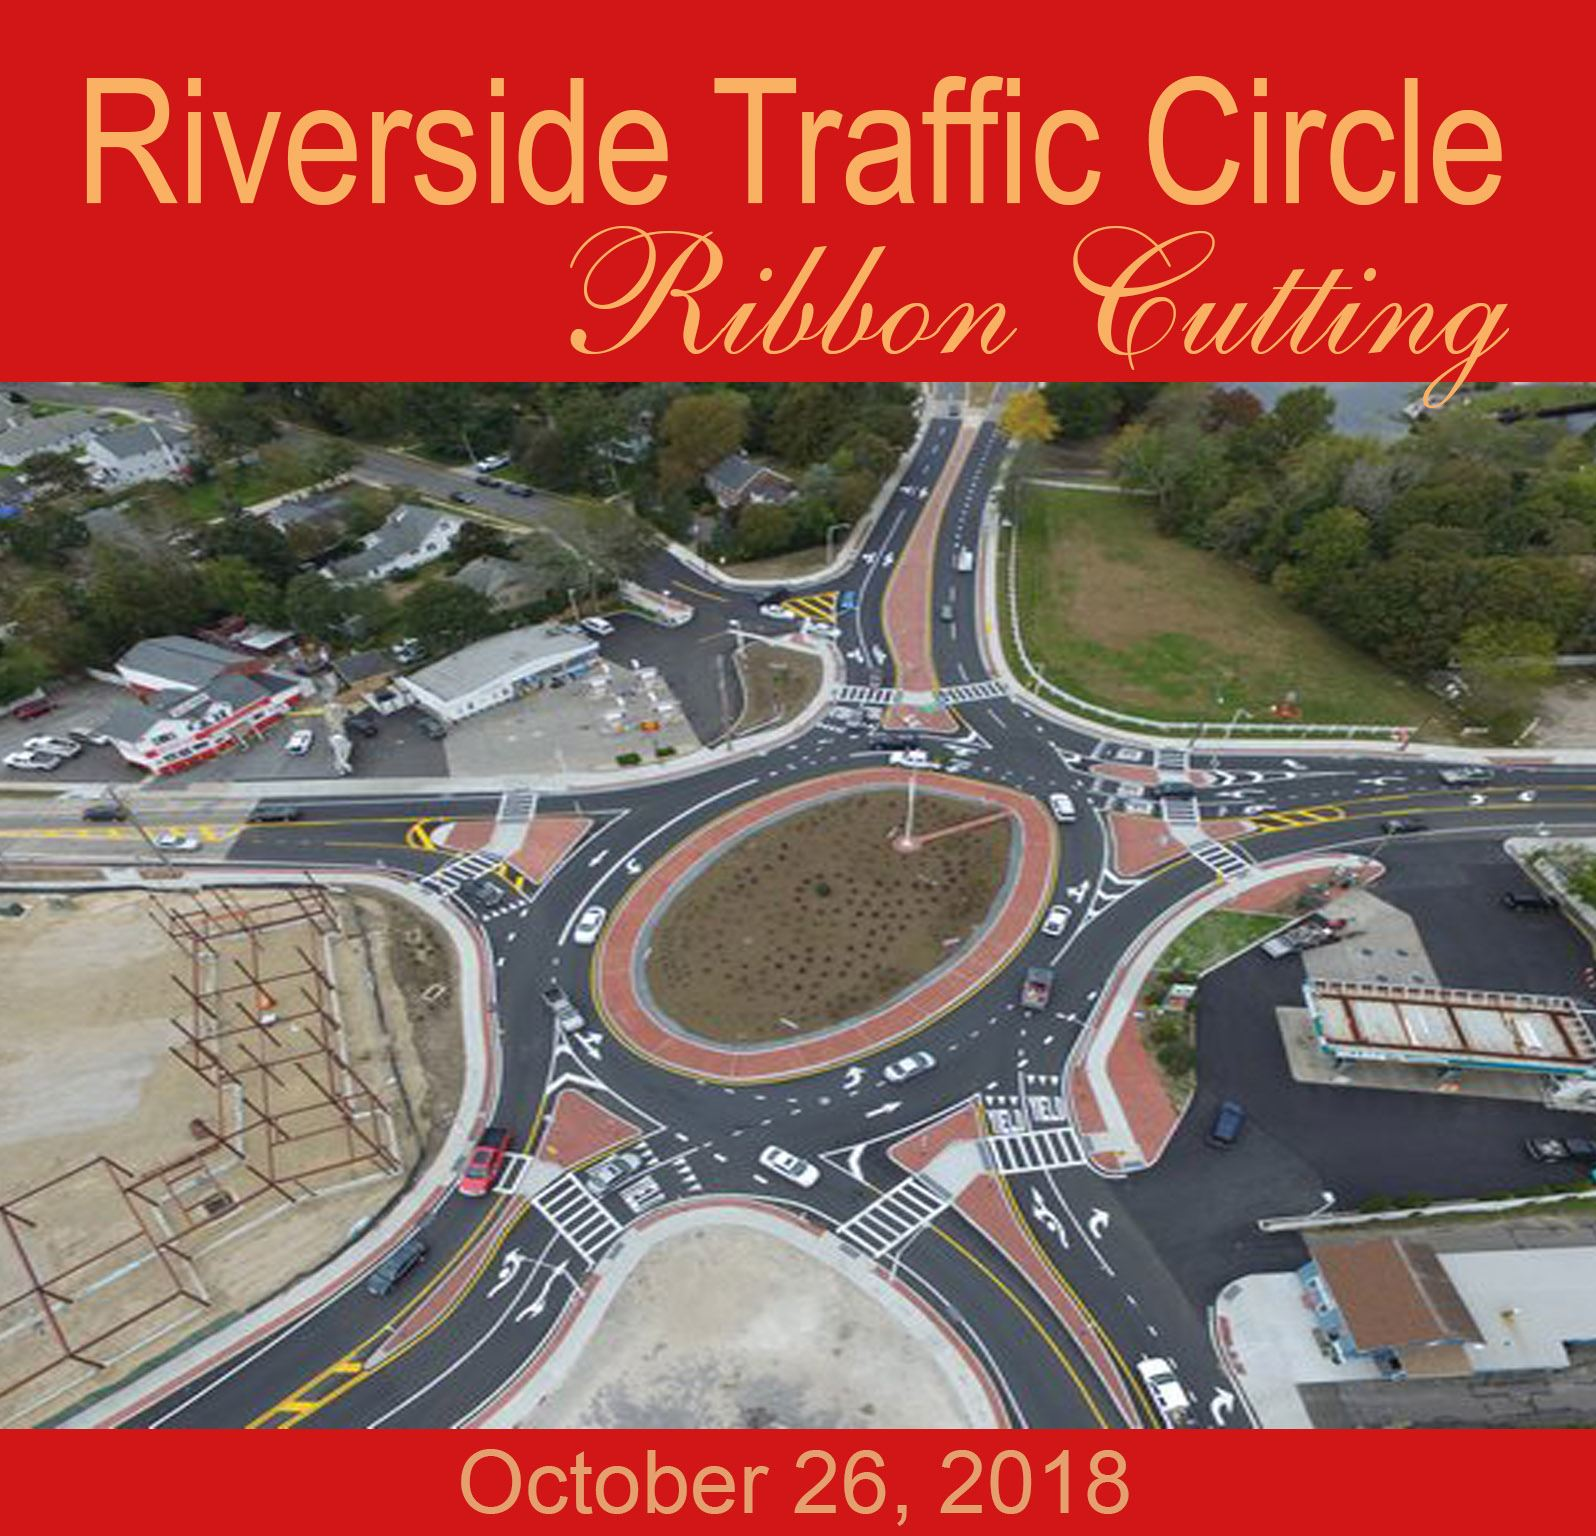 Riverside Traffic Circle Ribbon Cutting